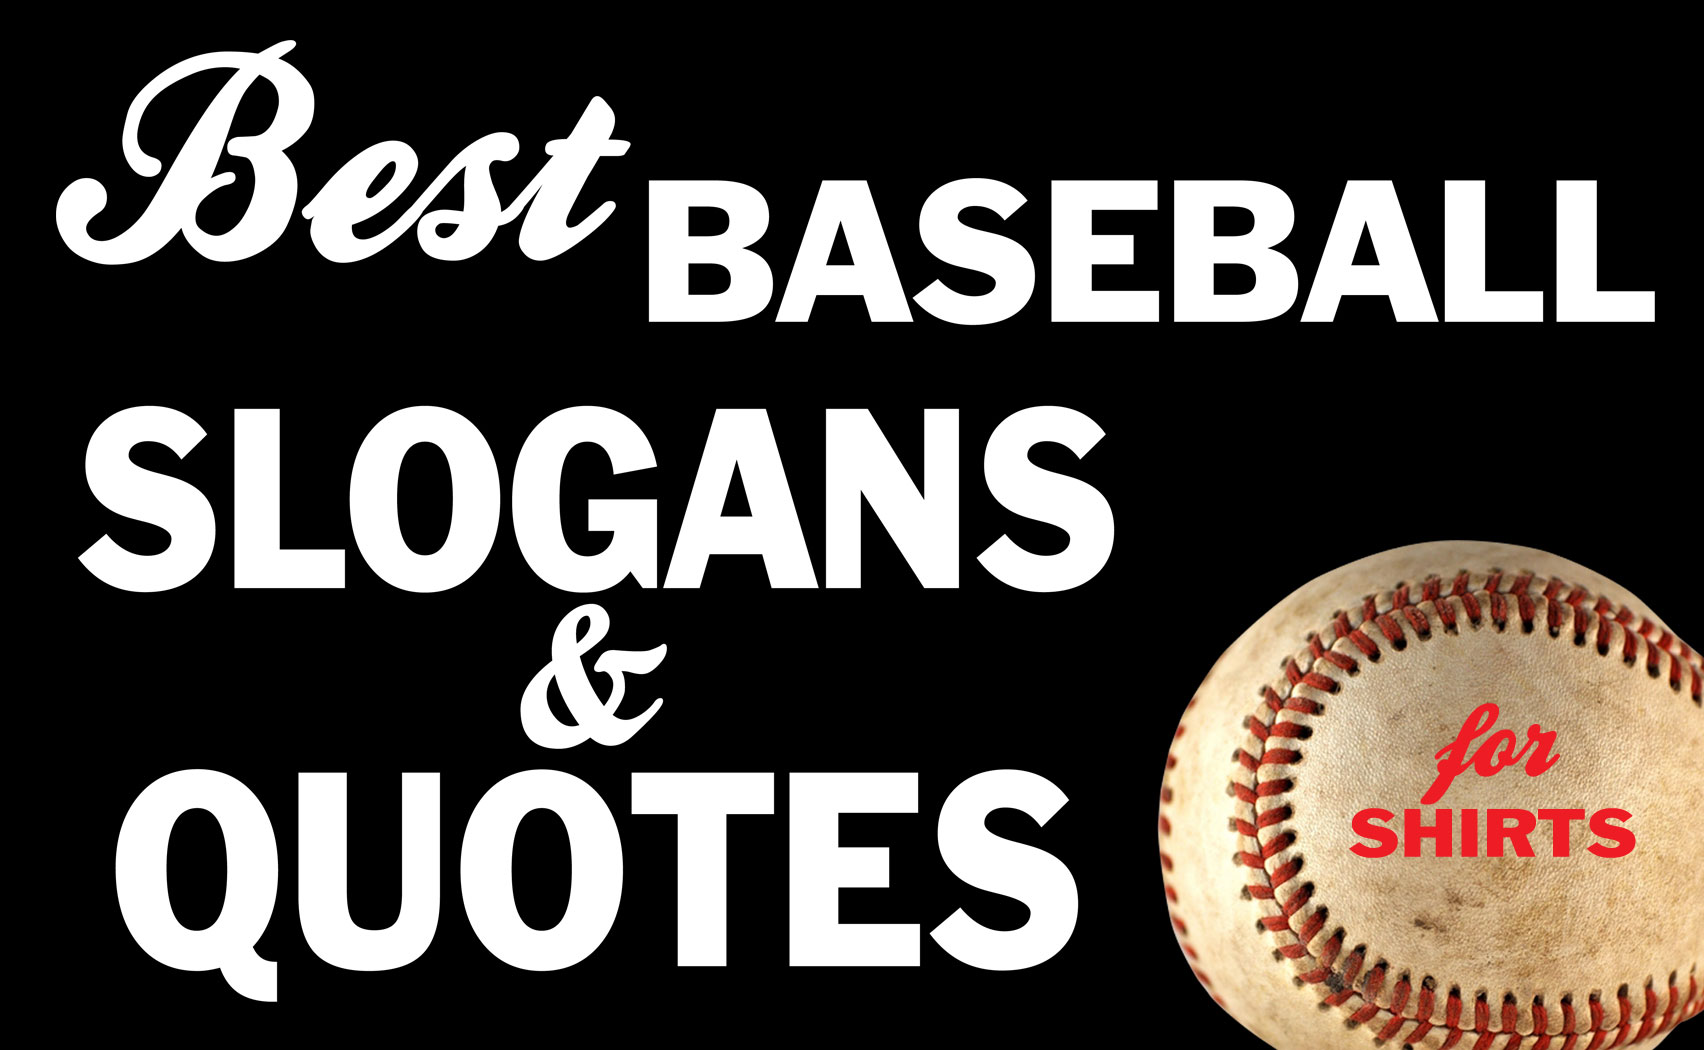 IZA Design Blog|The Best Baseball Slogans and Quotes for T-Shirts